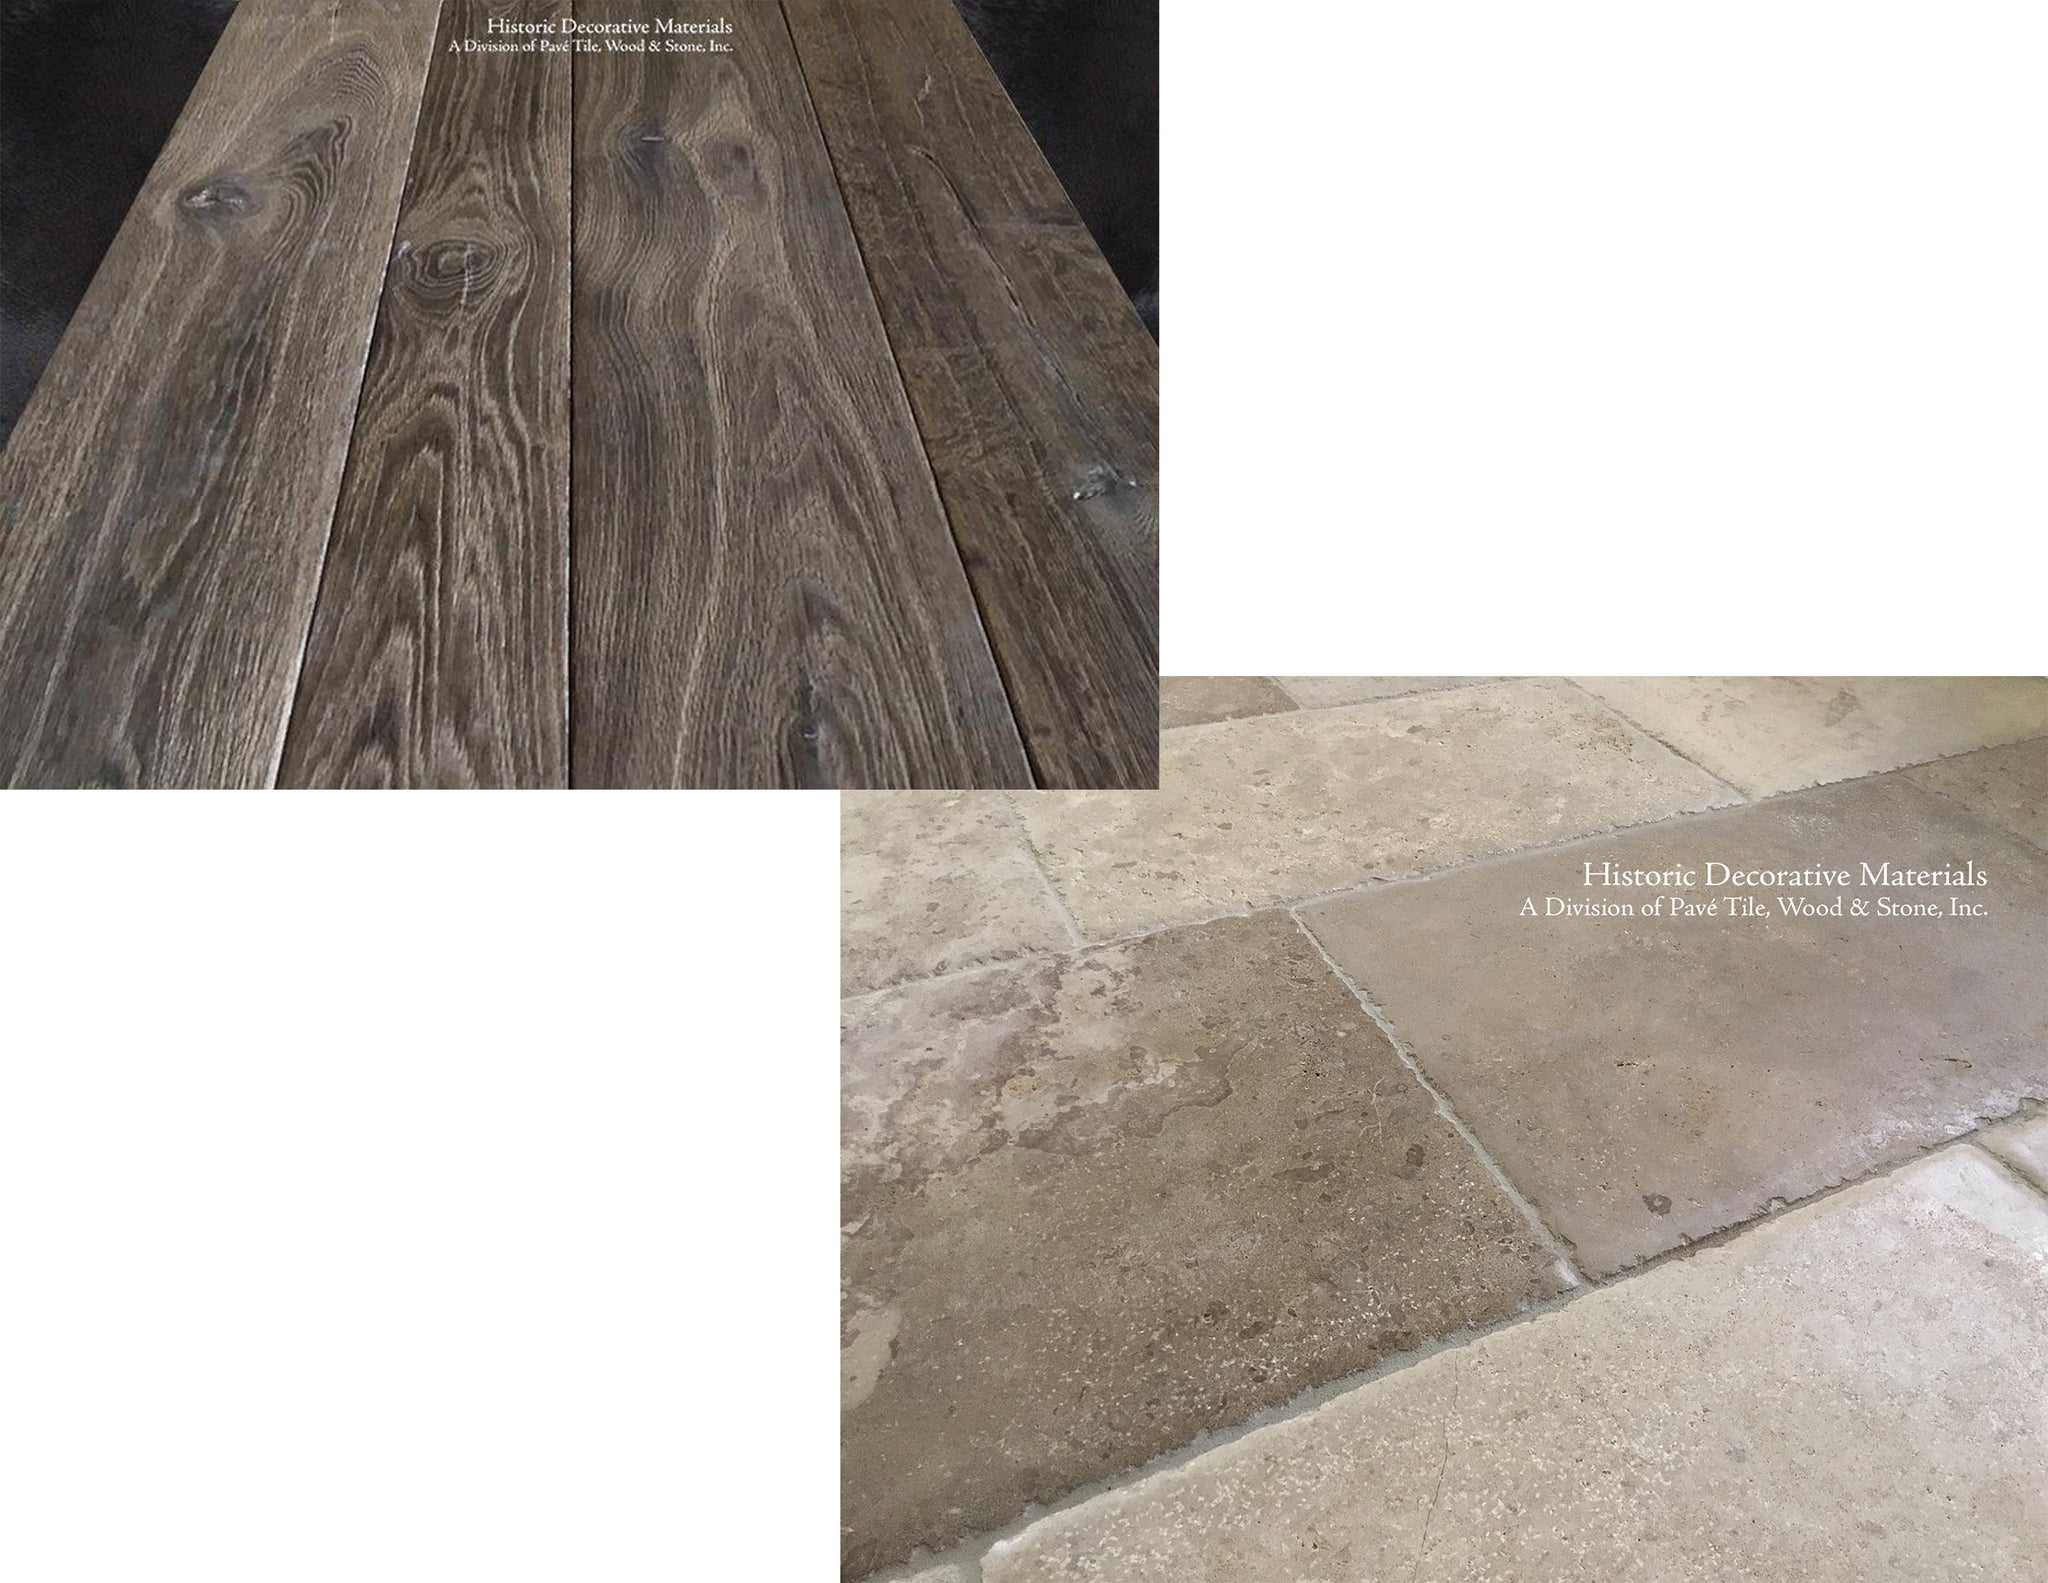 French Oak Flooring and French Limestone Flooring